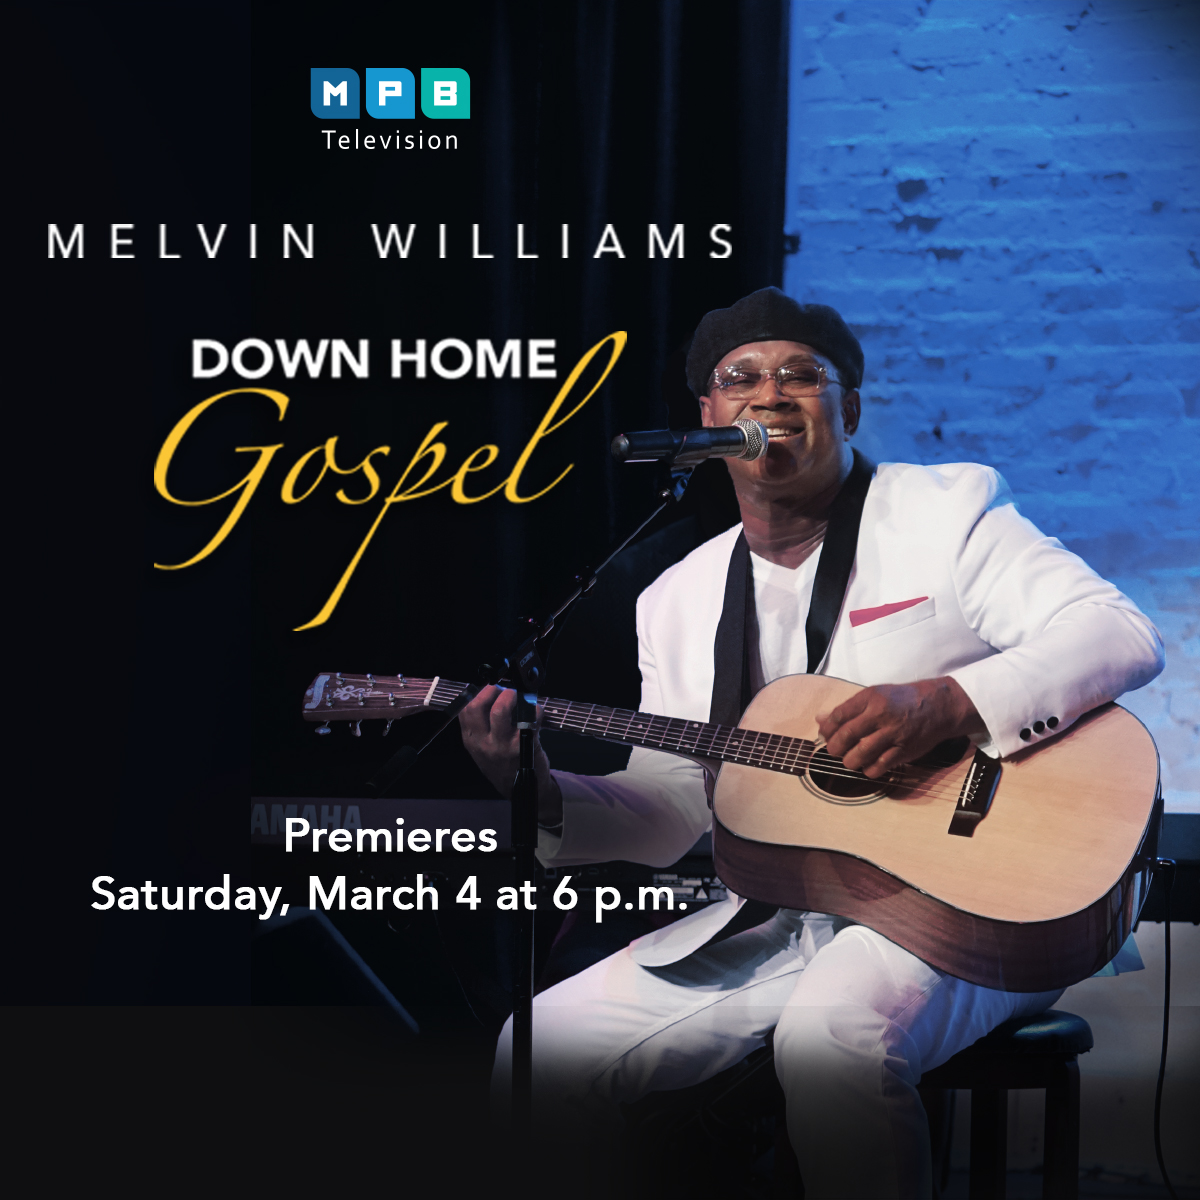 Melvin Williams: Down Home Gospel Premieres March 4 at 6 p.m. on MPB TV.